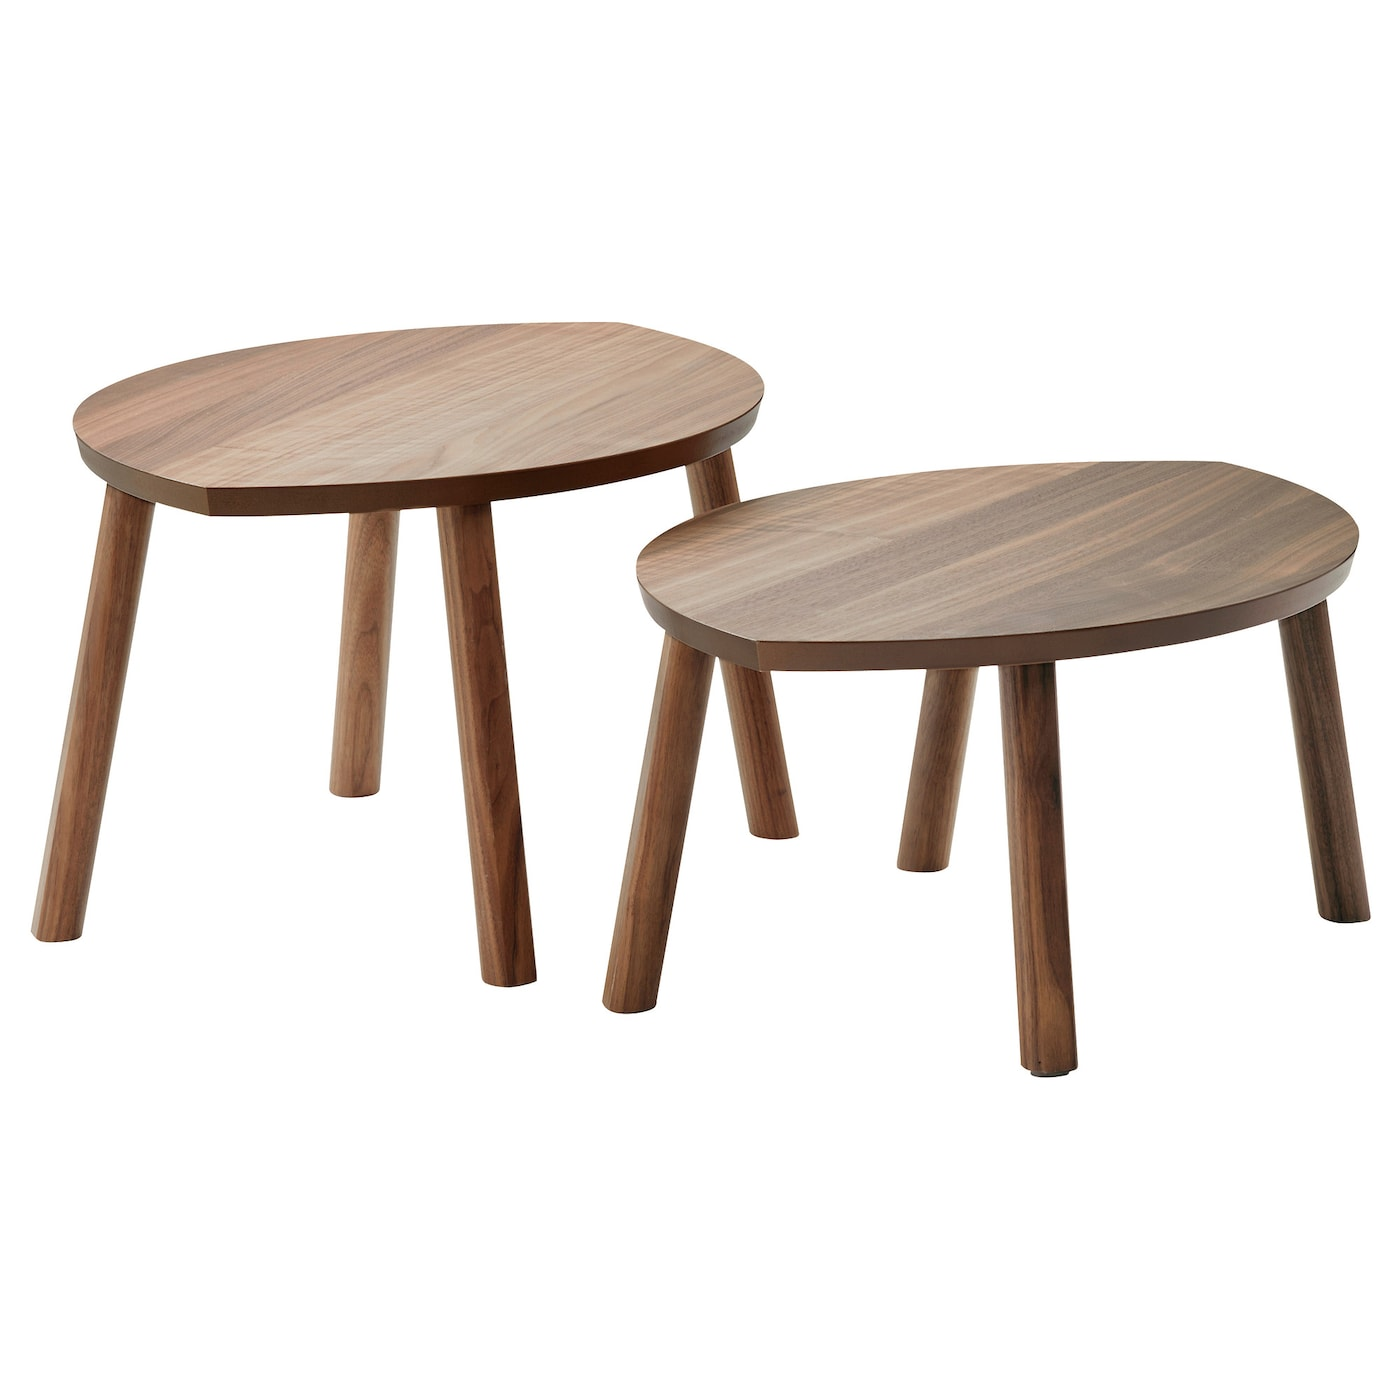 Table d 39 appoint table d 39 appoint pliante ikea for Ikea besta table d appoint